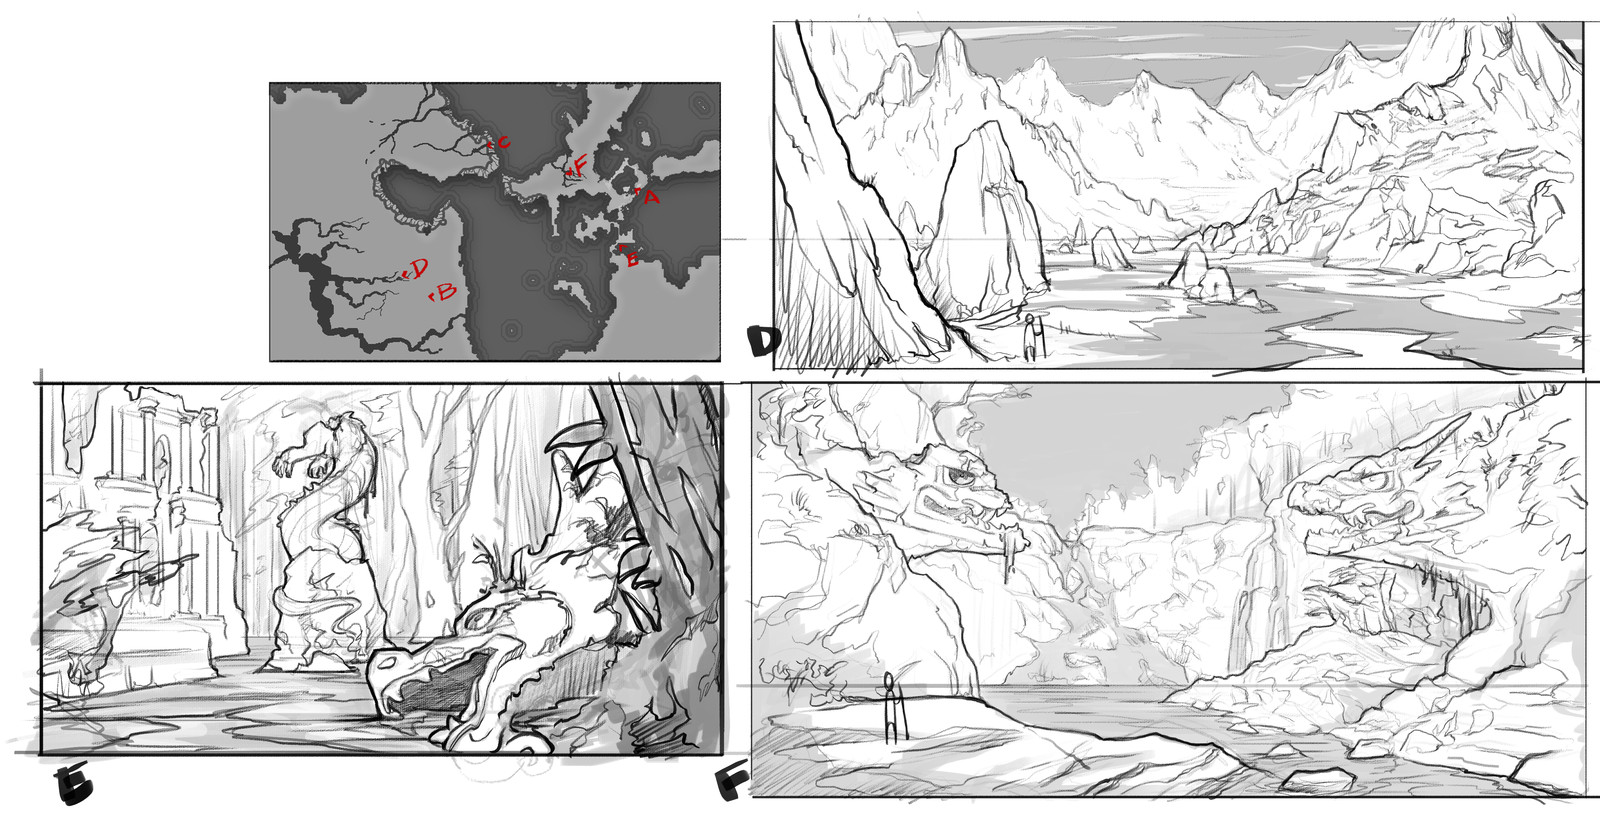 Enviroment concept art sketches 2